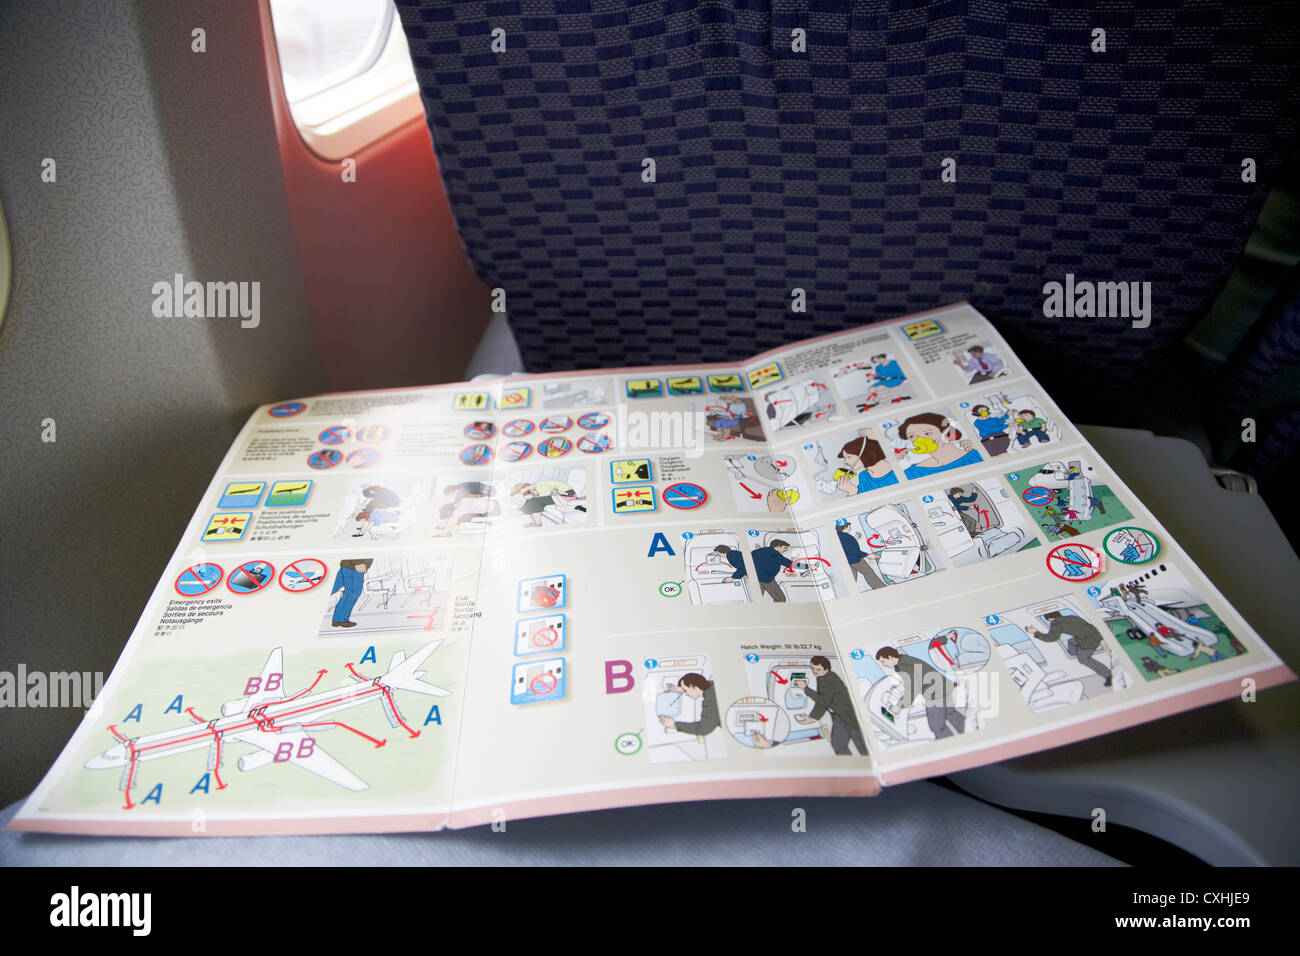 Flight Safety-Card an Bord einer Boeing 757 Flugzeug Stockbild